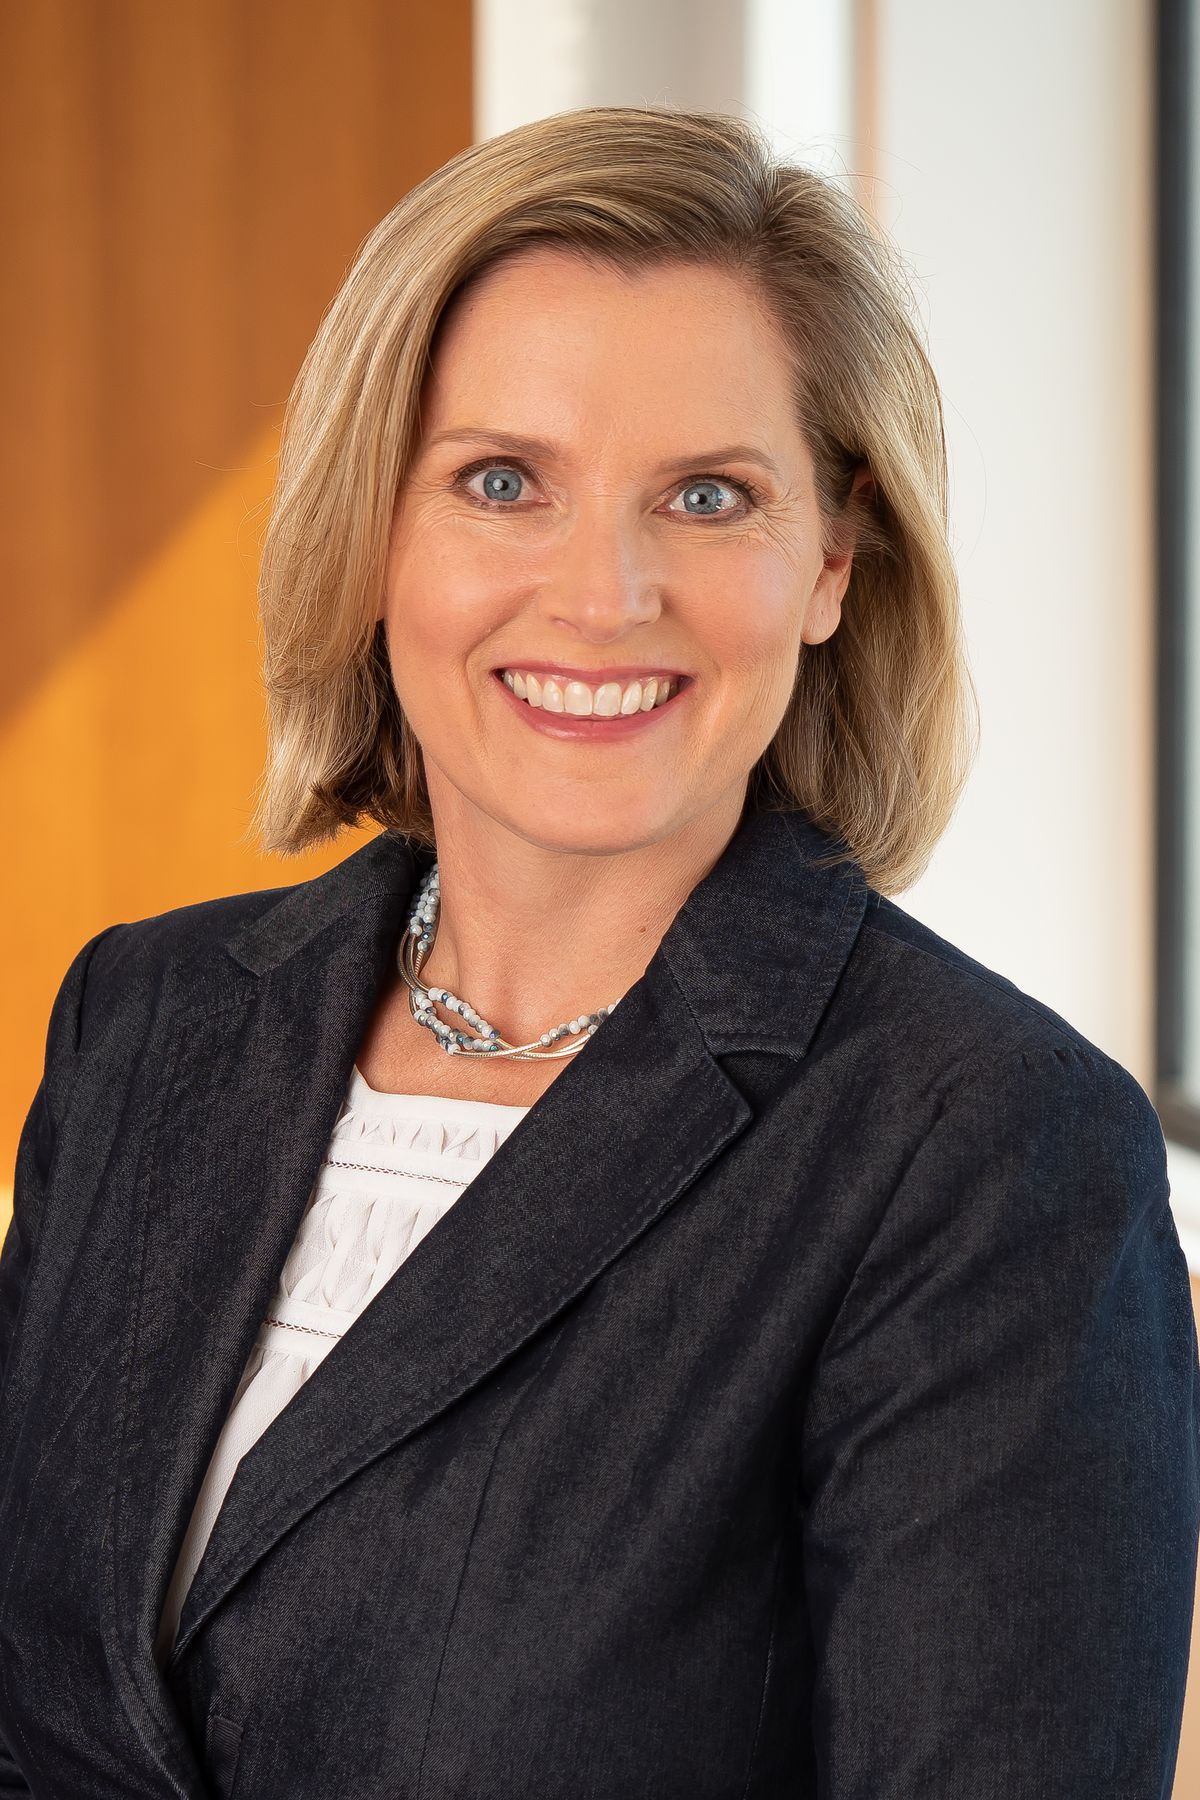 Christy Harris, an Allstate Corp. senior vice president who oversees areas of the insurer's business including inclusive diversity efforts.